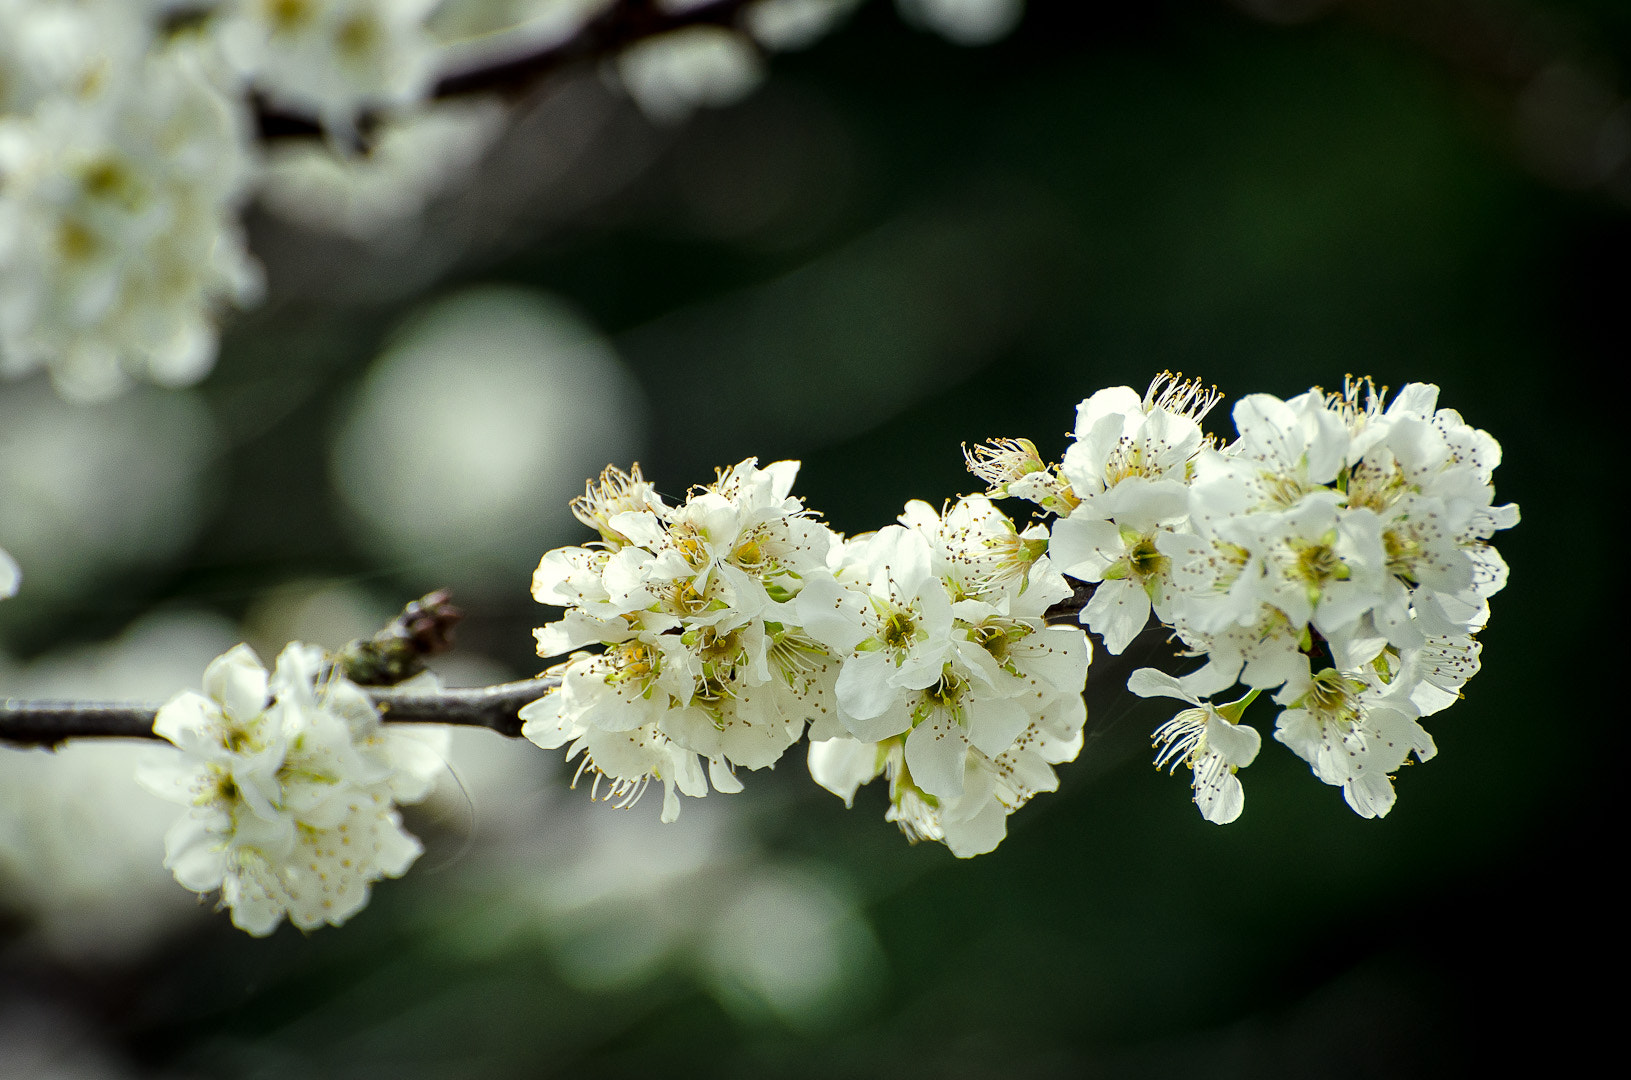 Photograph Plum blossom by Chris Veale on 500px